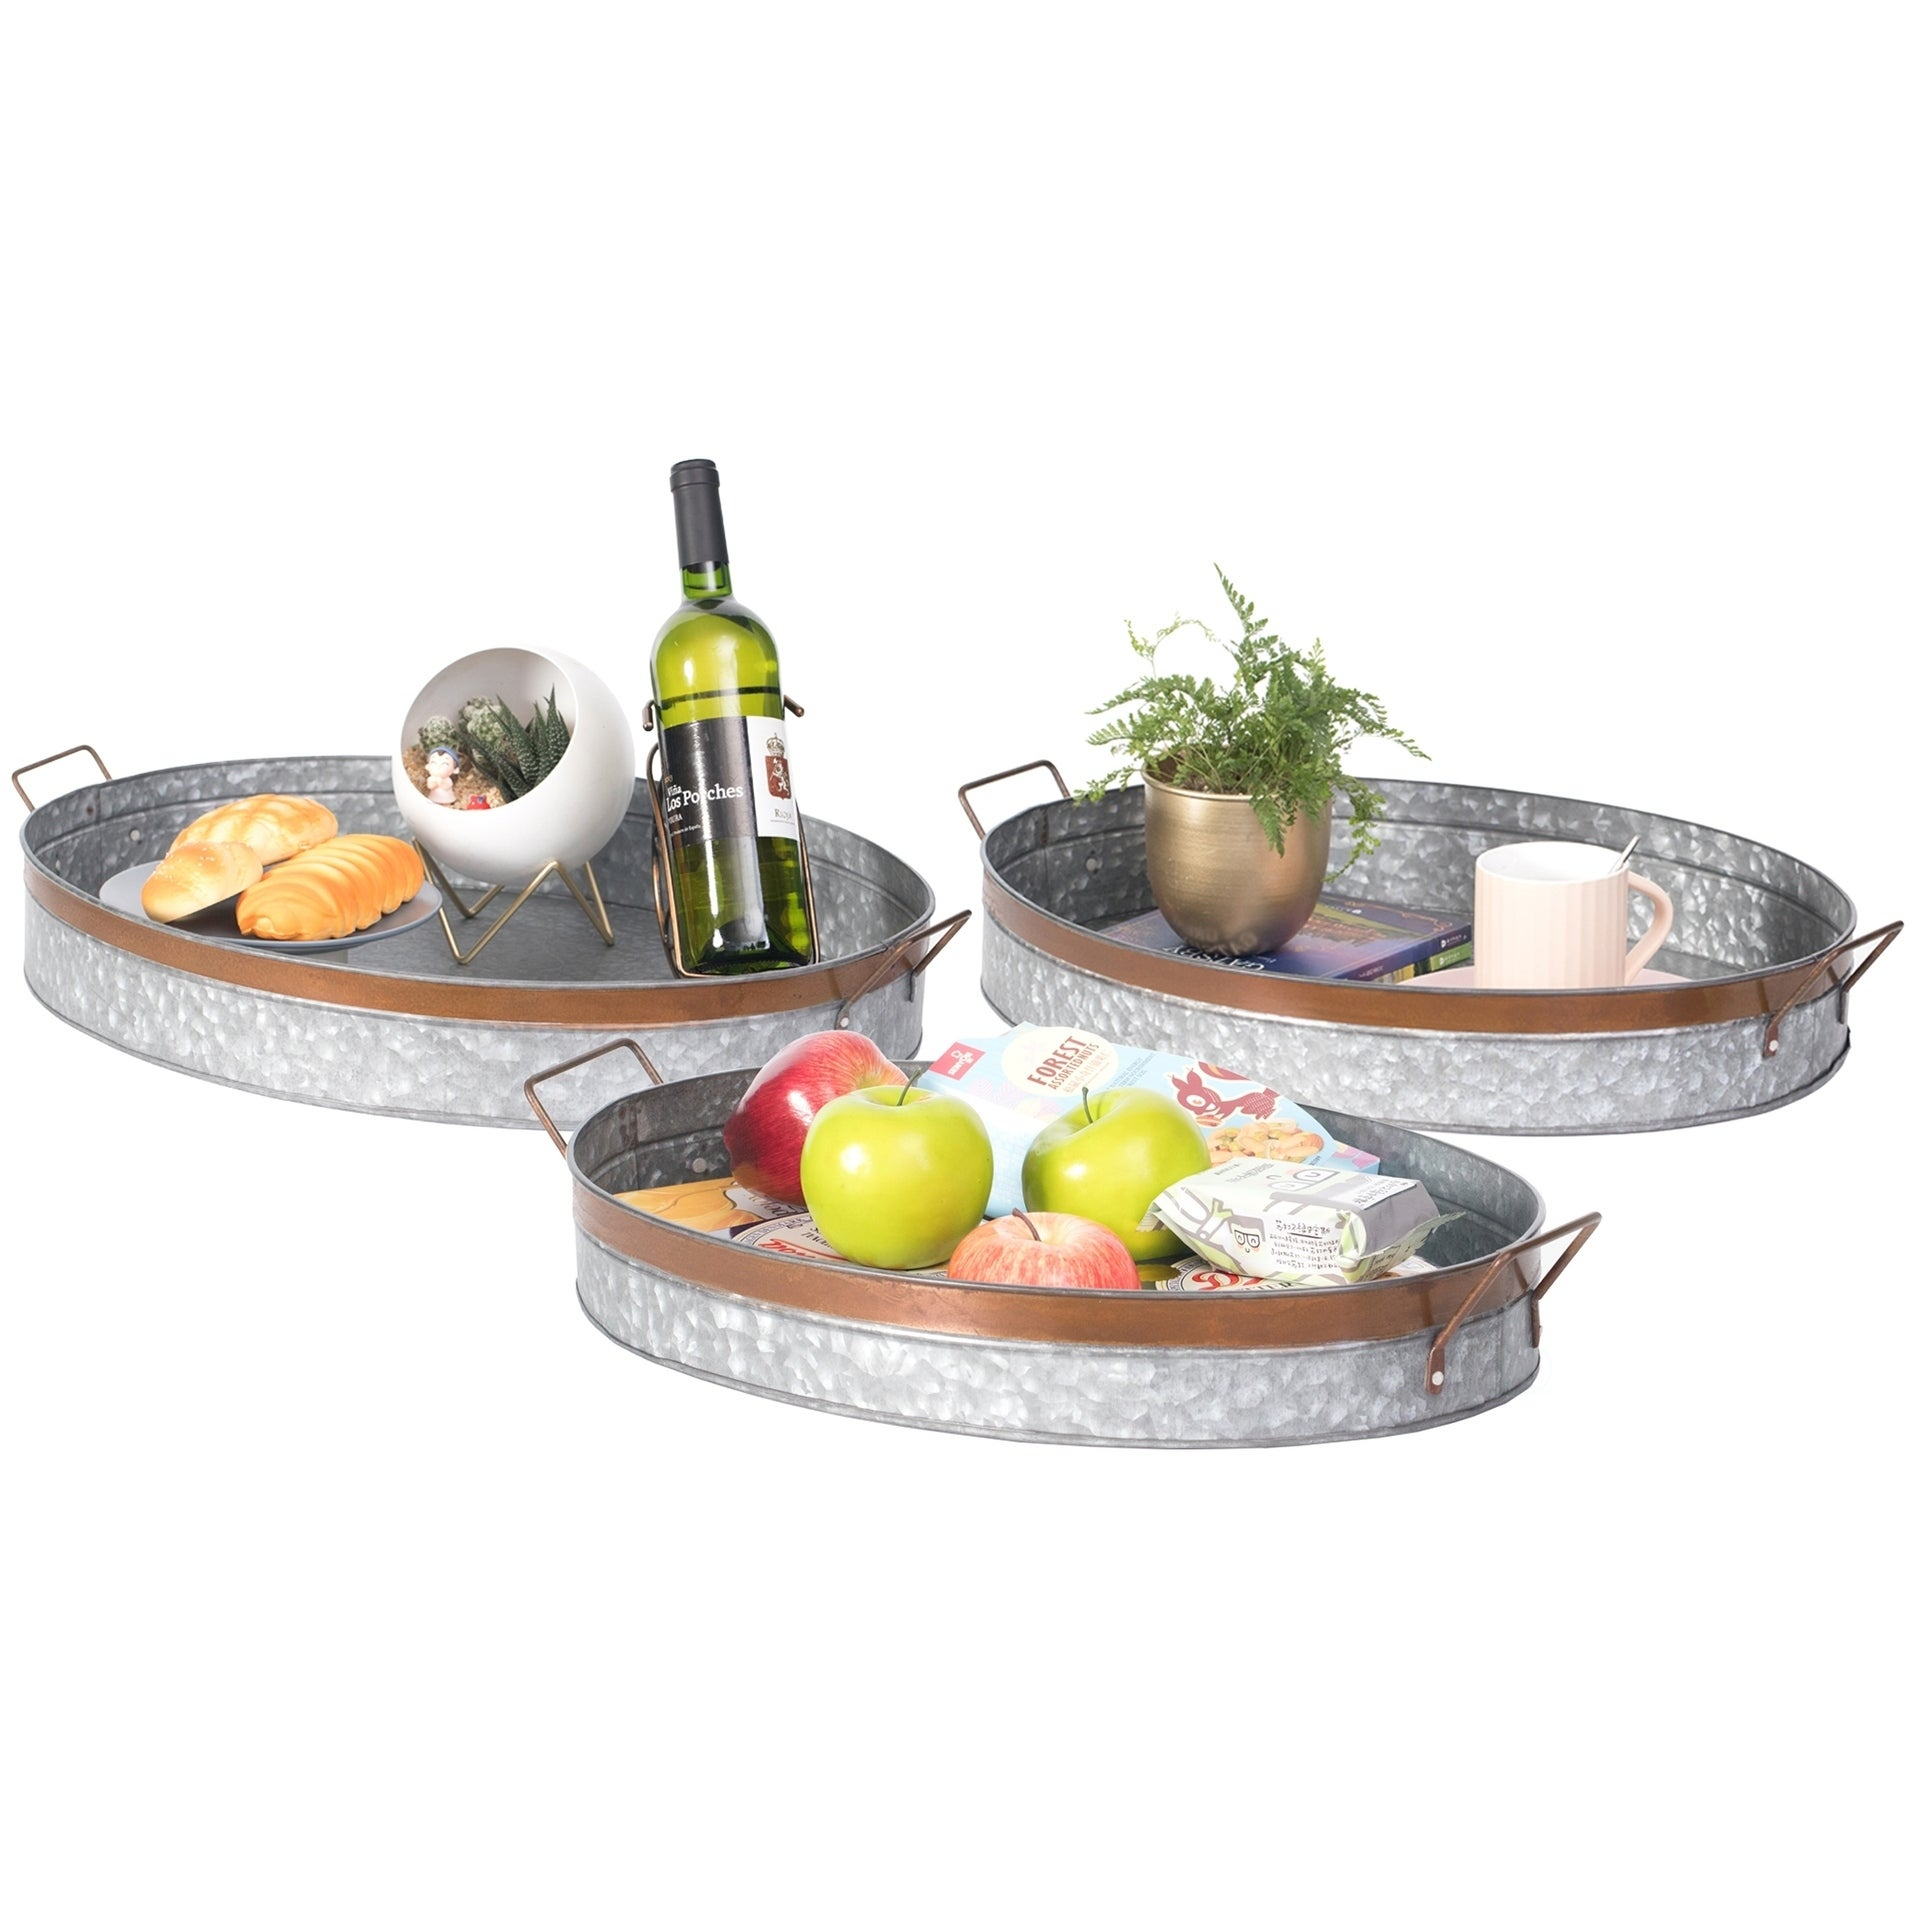 Galvanized Metal Oval Rustic Serving Tray With Handles Overstock 28179553